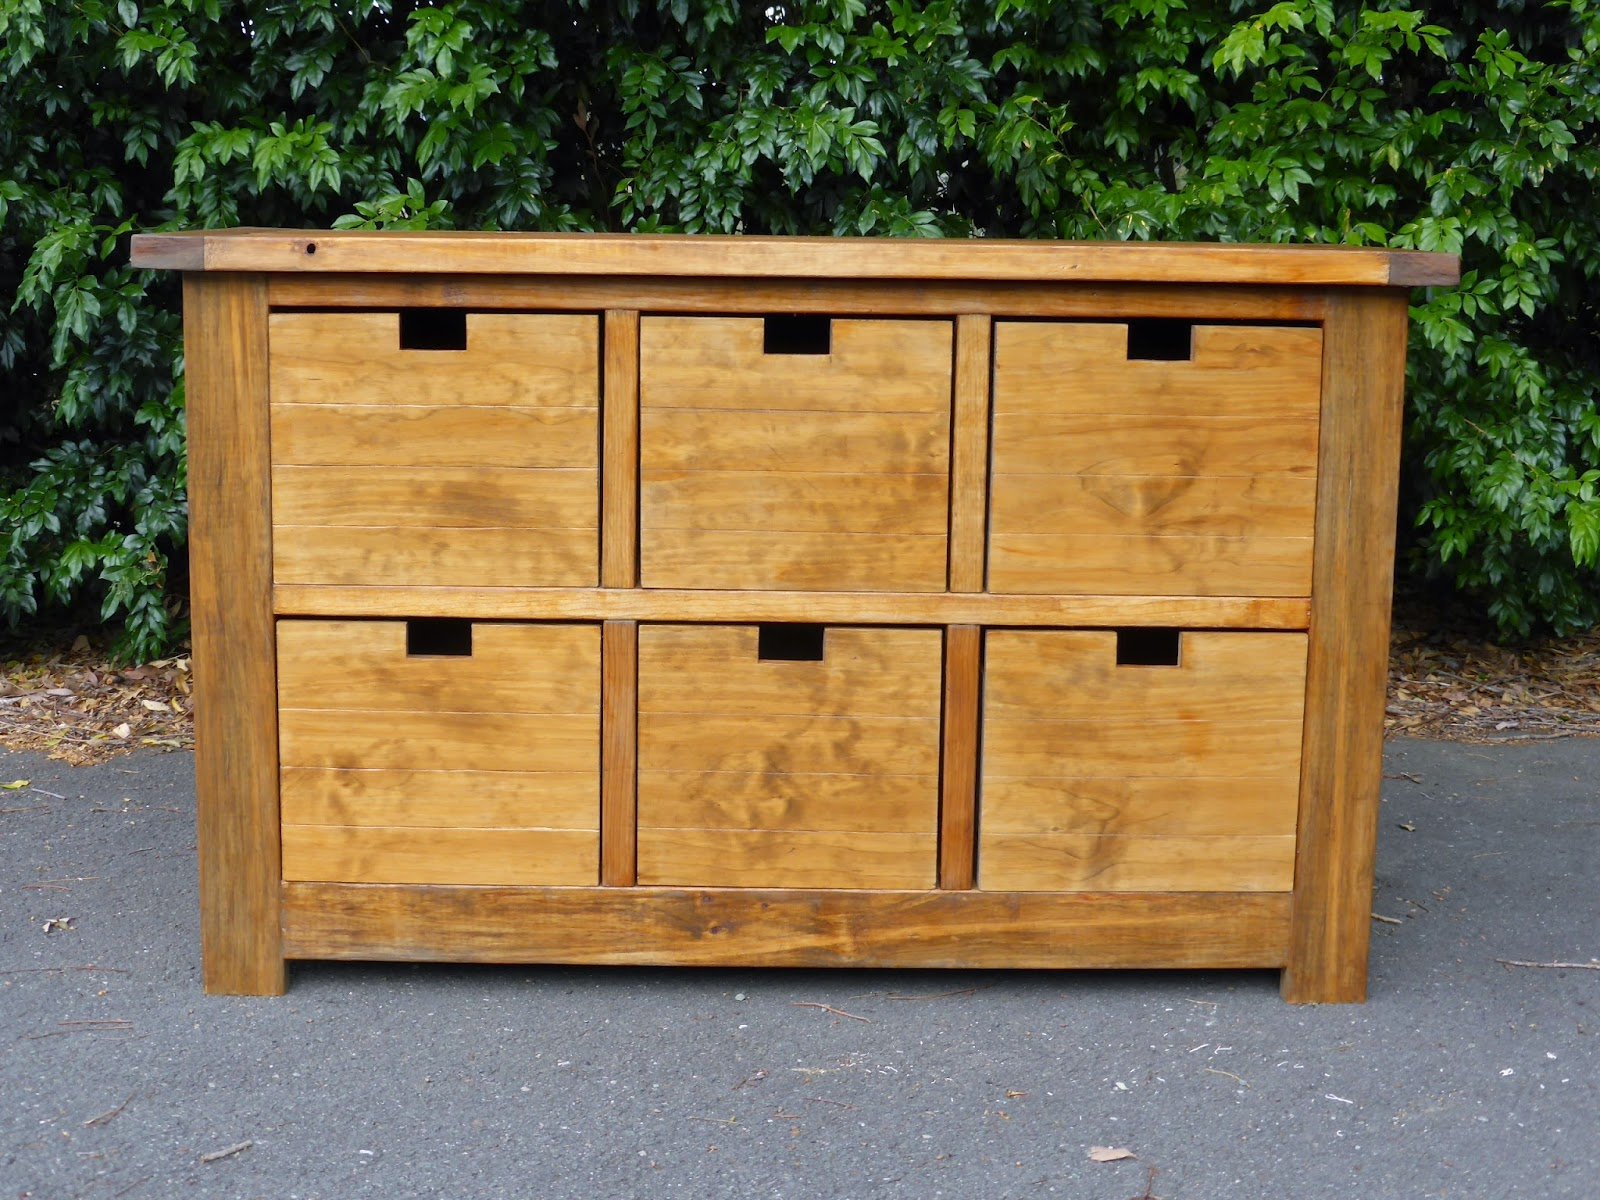 Ana White Dumpster Dresser From 2x4s Diy Projects